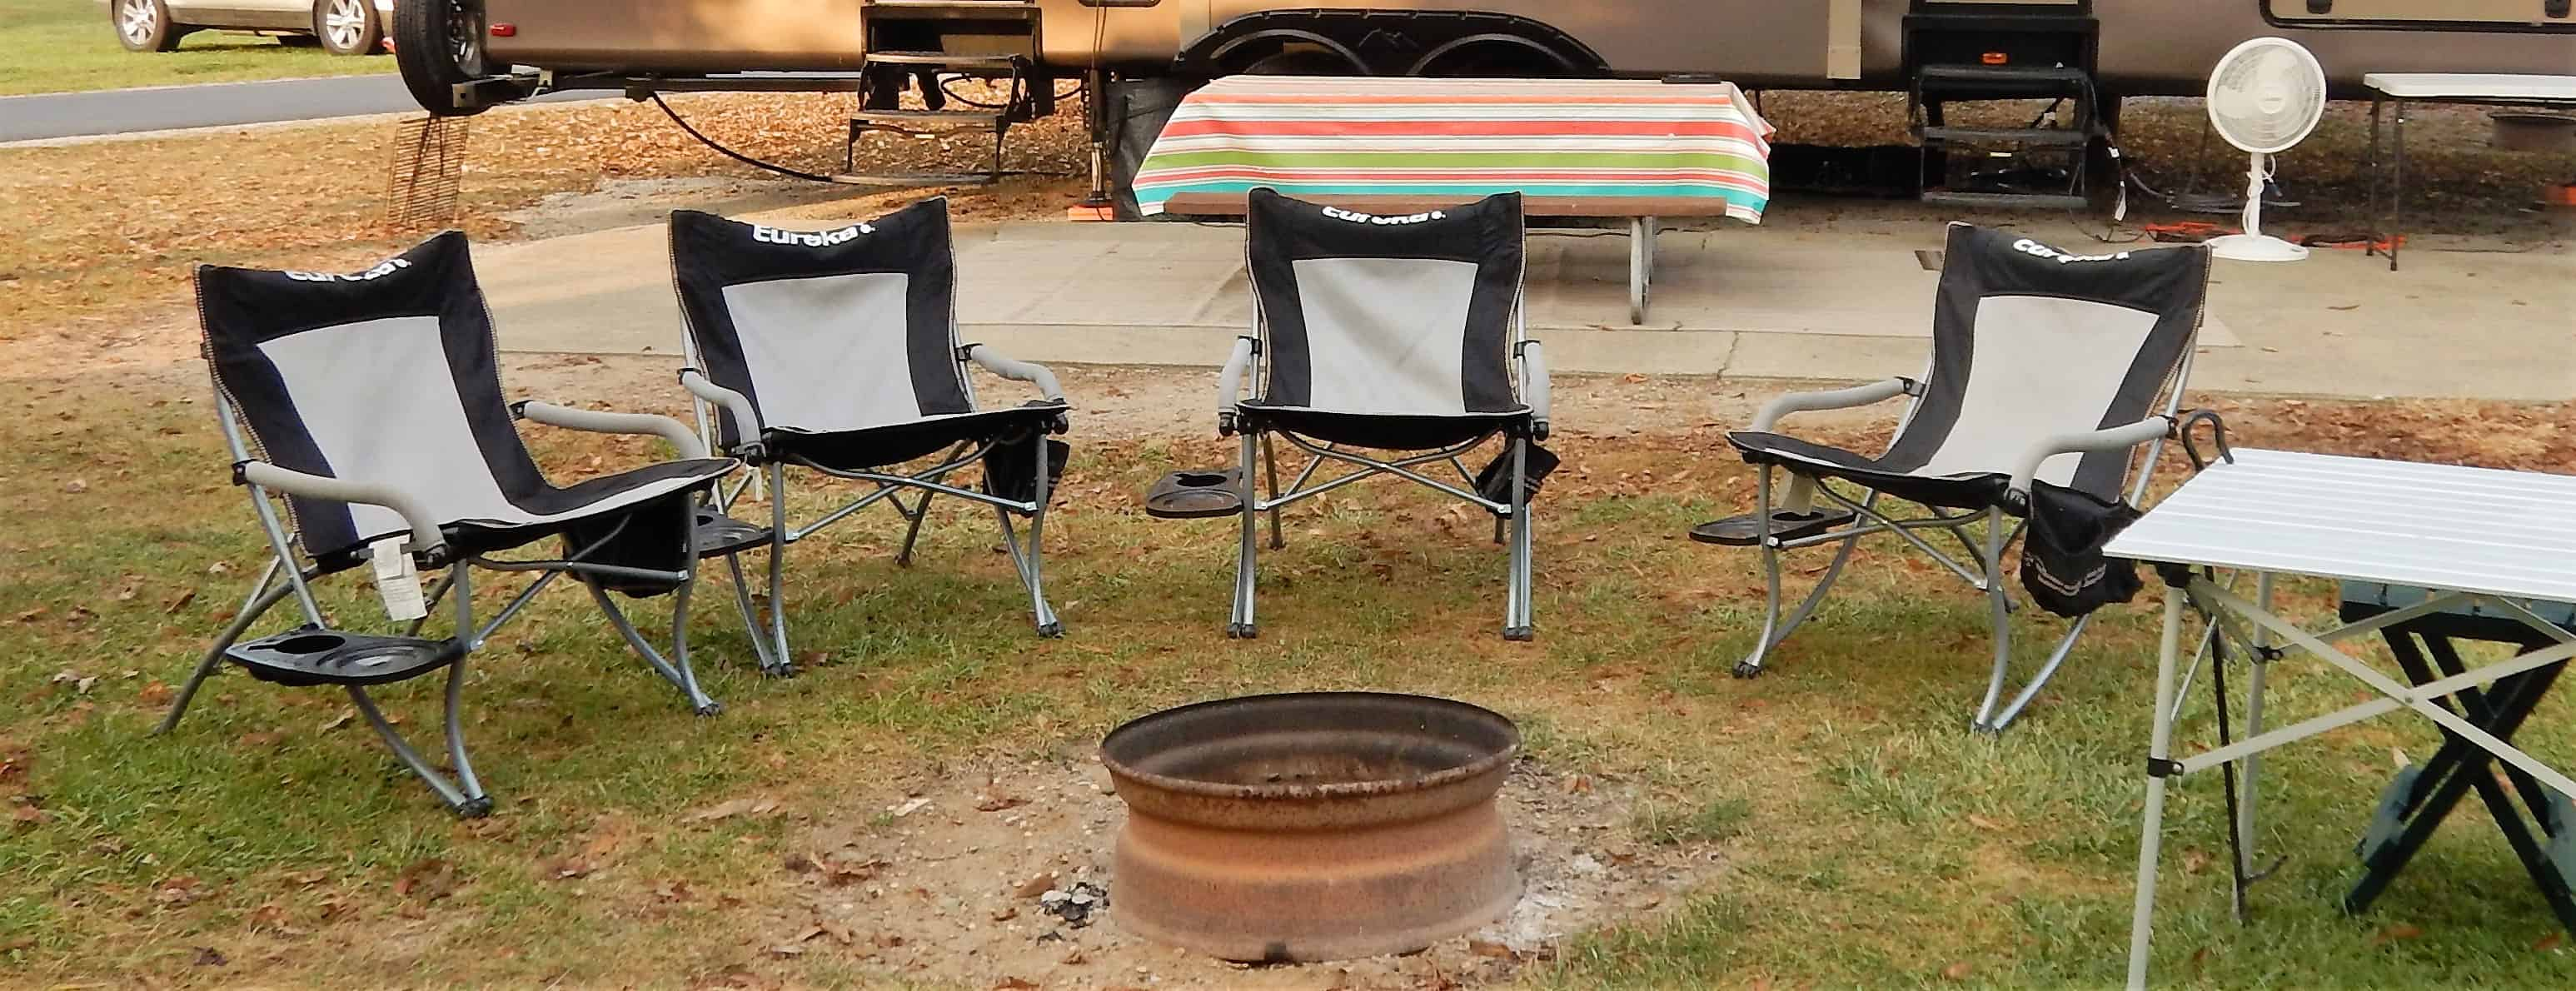 Heavy Duty Outdoor Chairs Rv Outdoor Chairs Best Interior Furniture